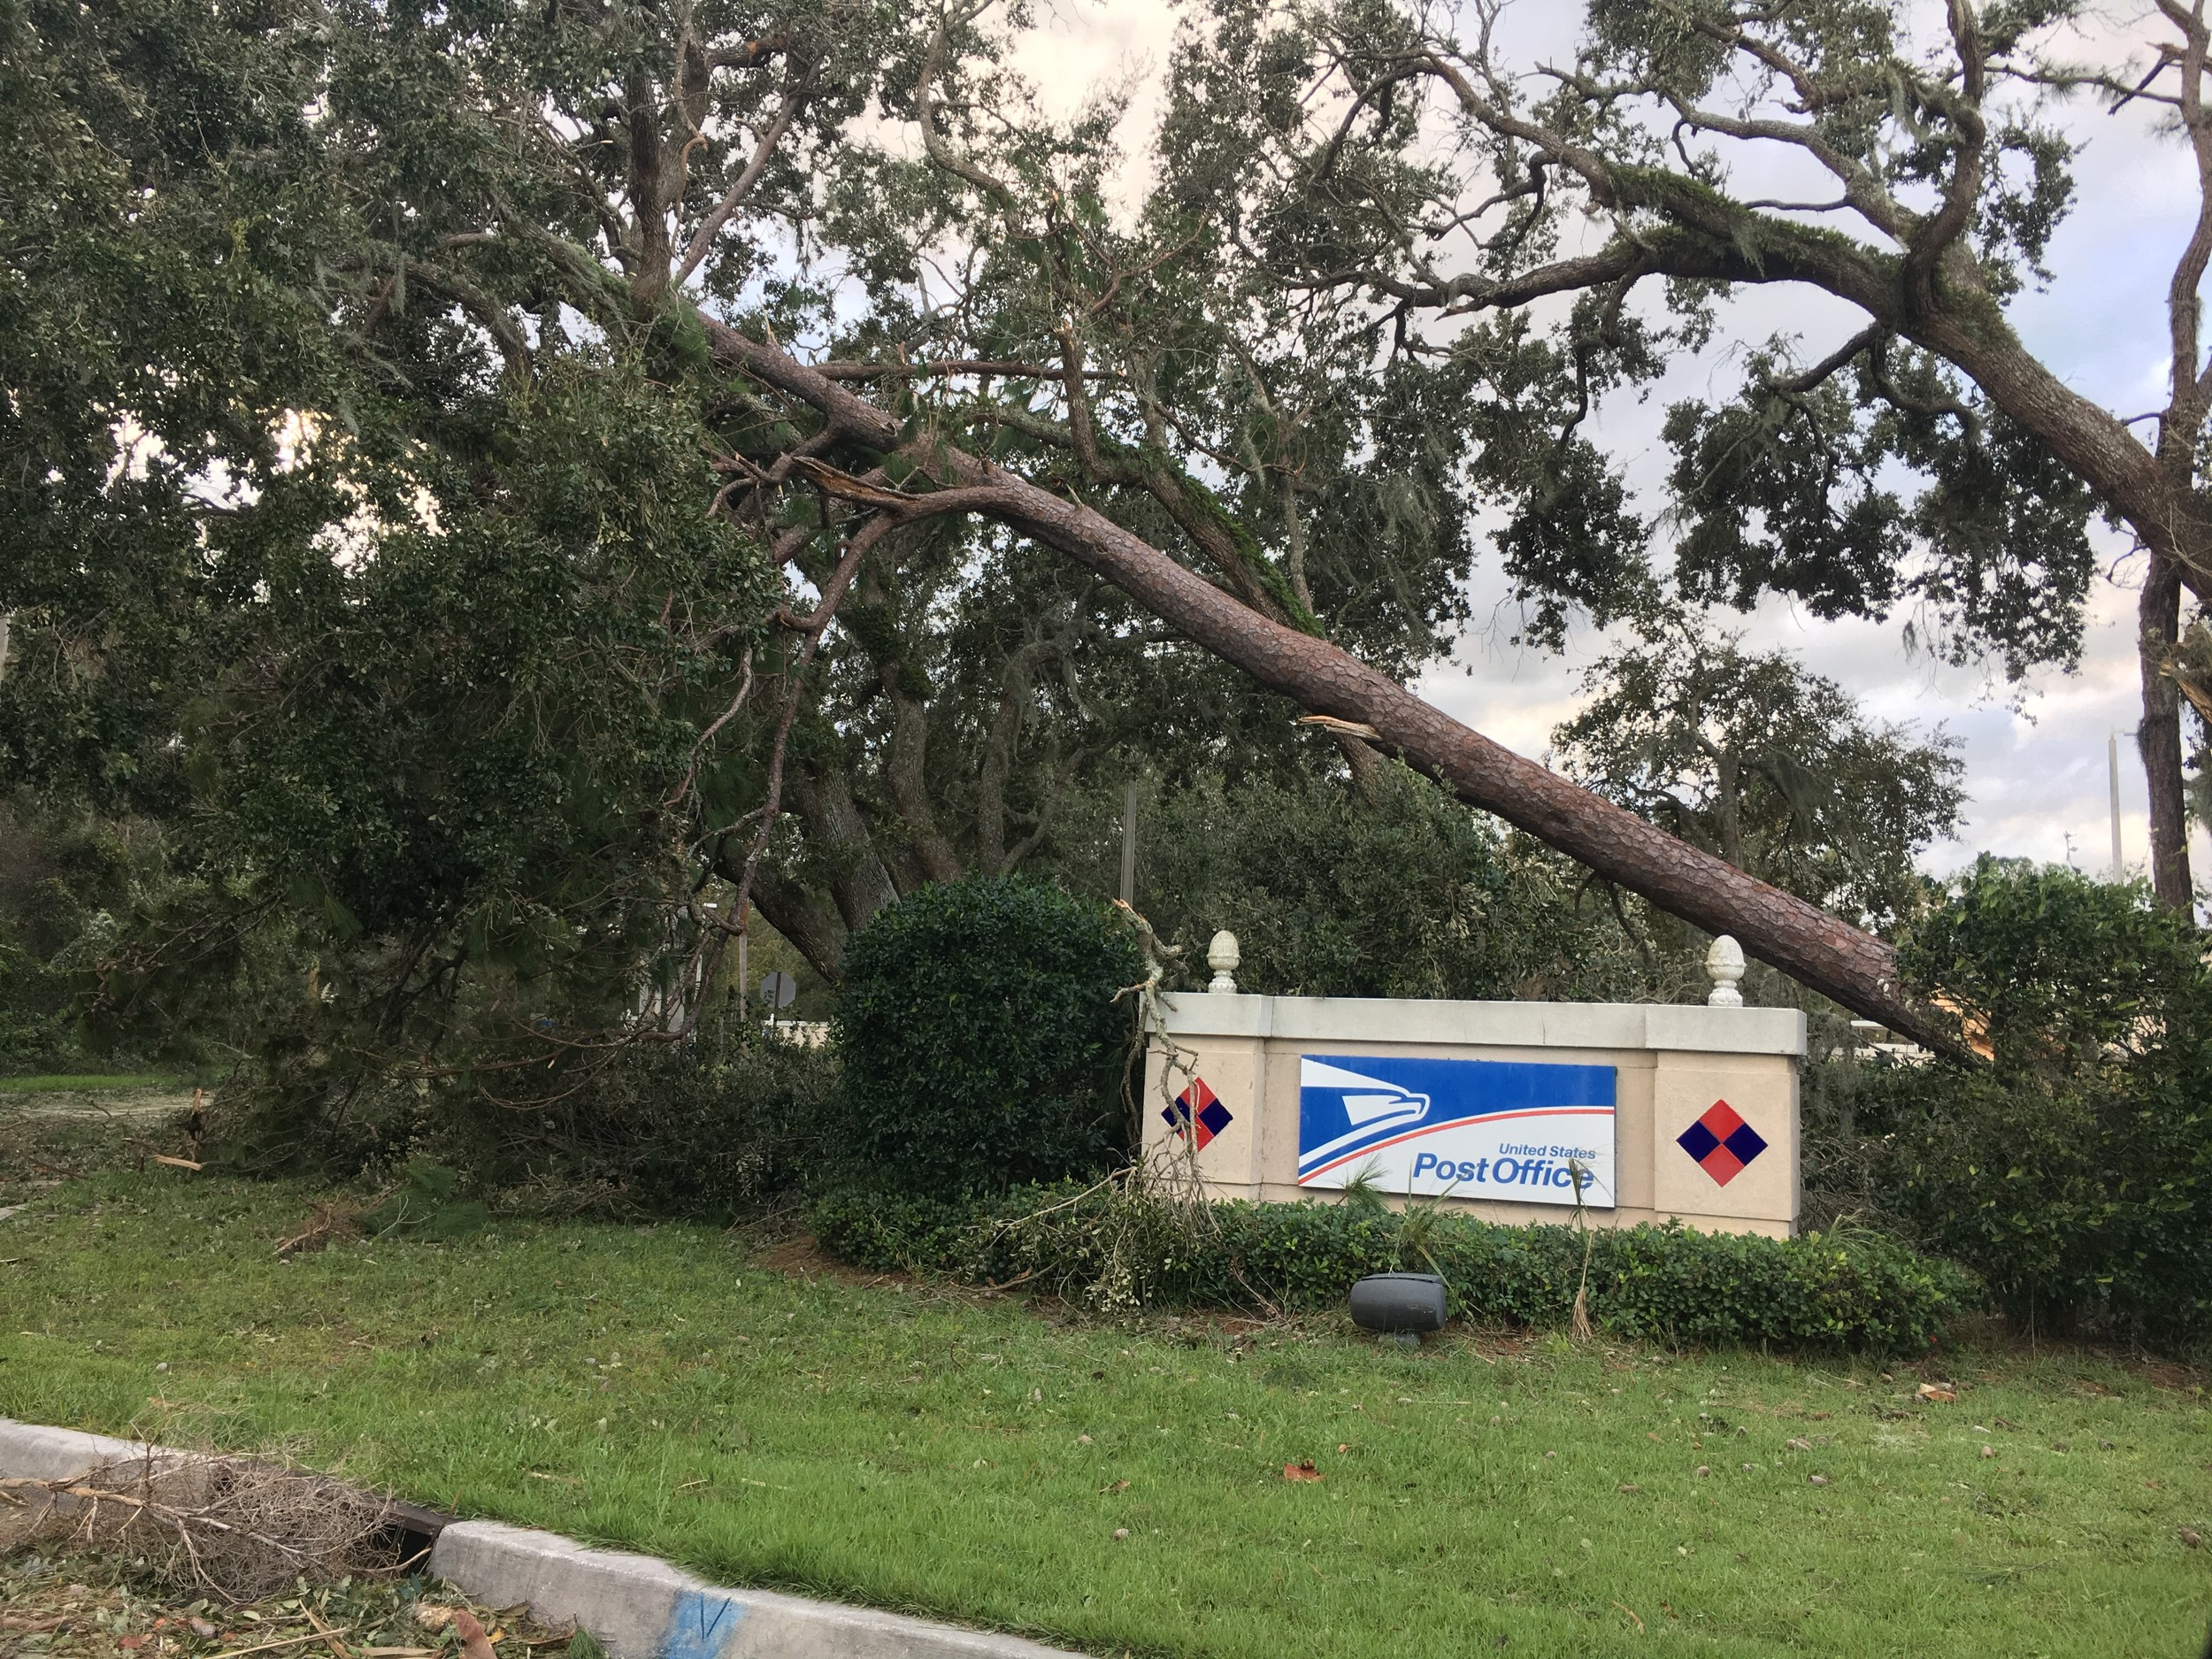 A tree collapses outside the Post Office in Ponte Vedra Beach.